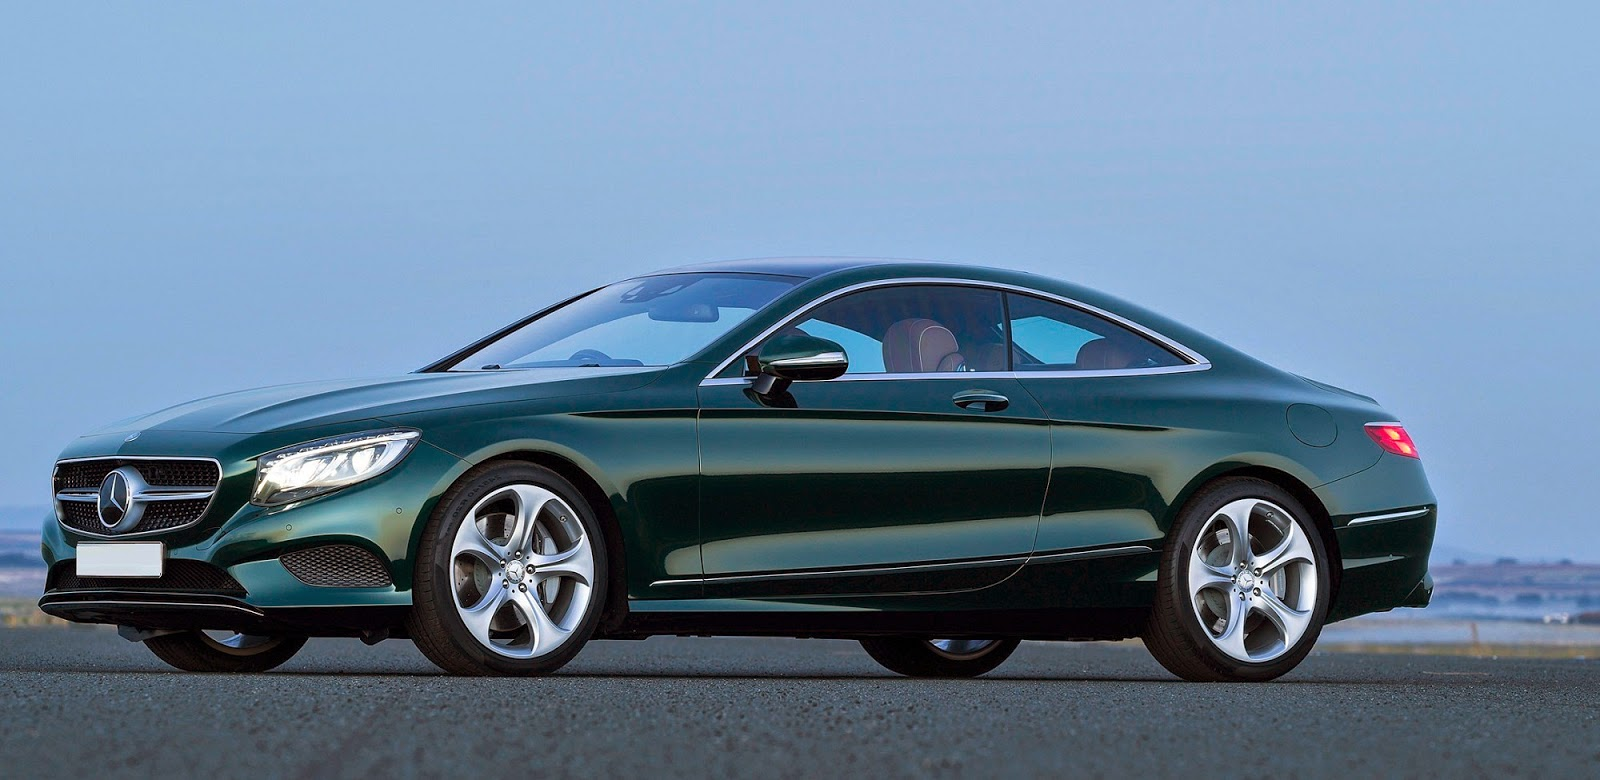 uk pricing released for mercedes benz s class coupe car